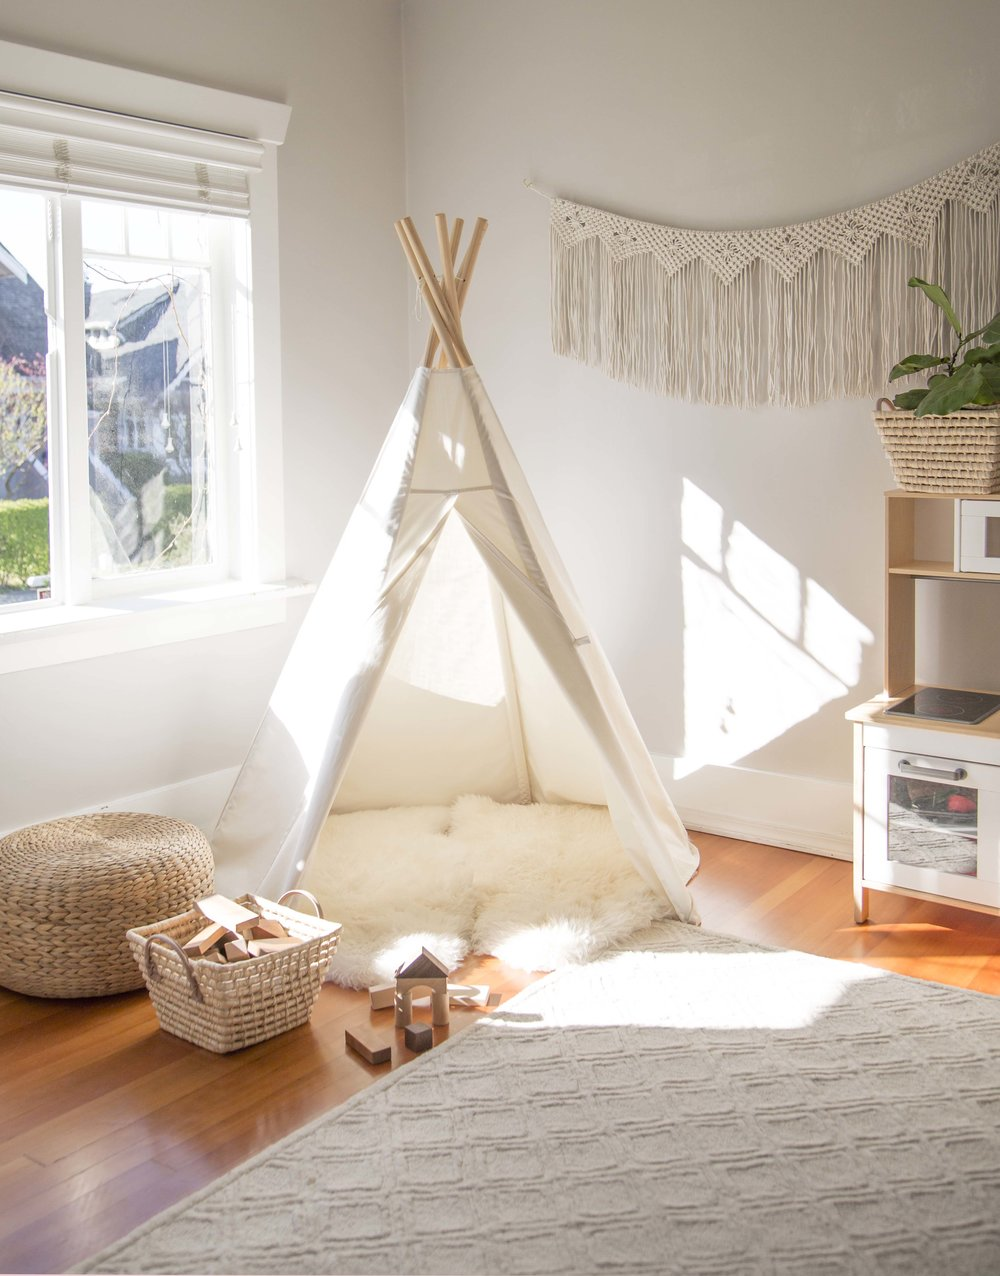 canvas teepee in children's playroom